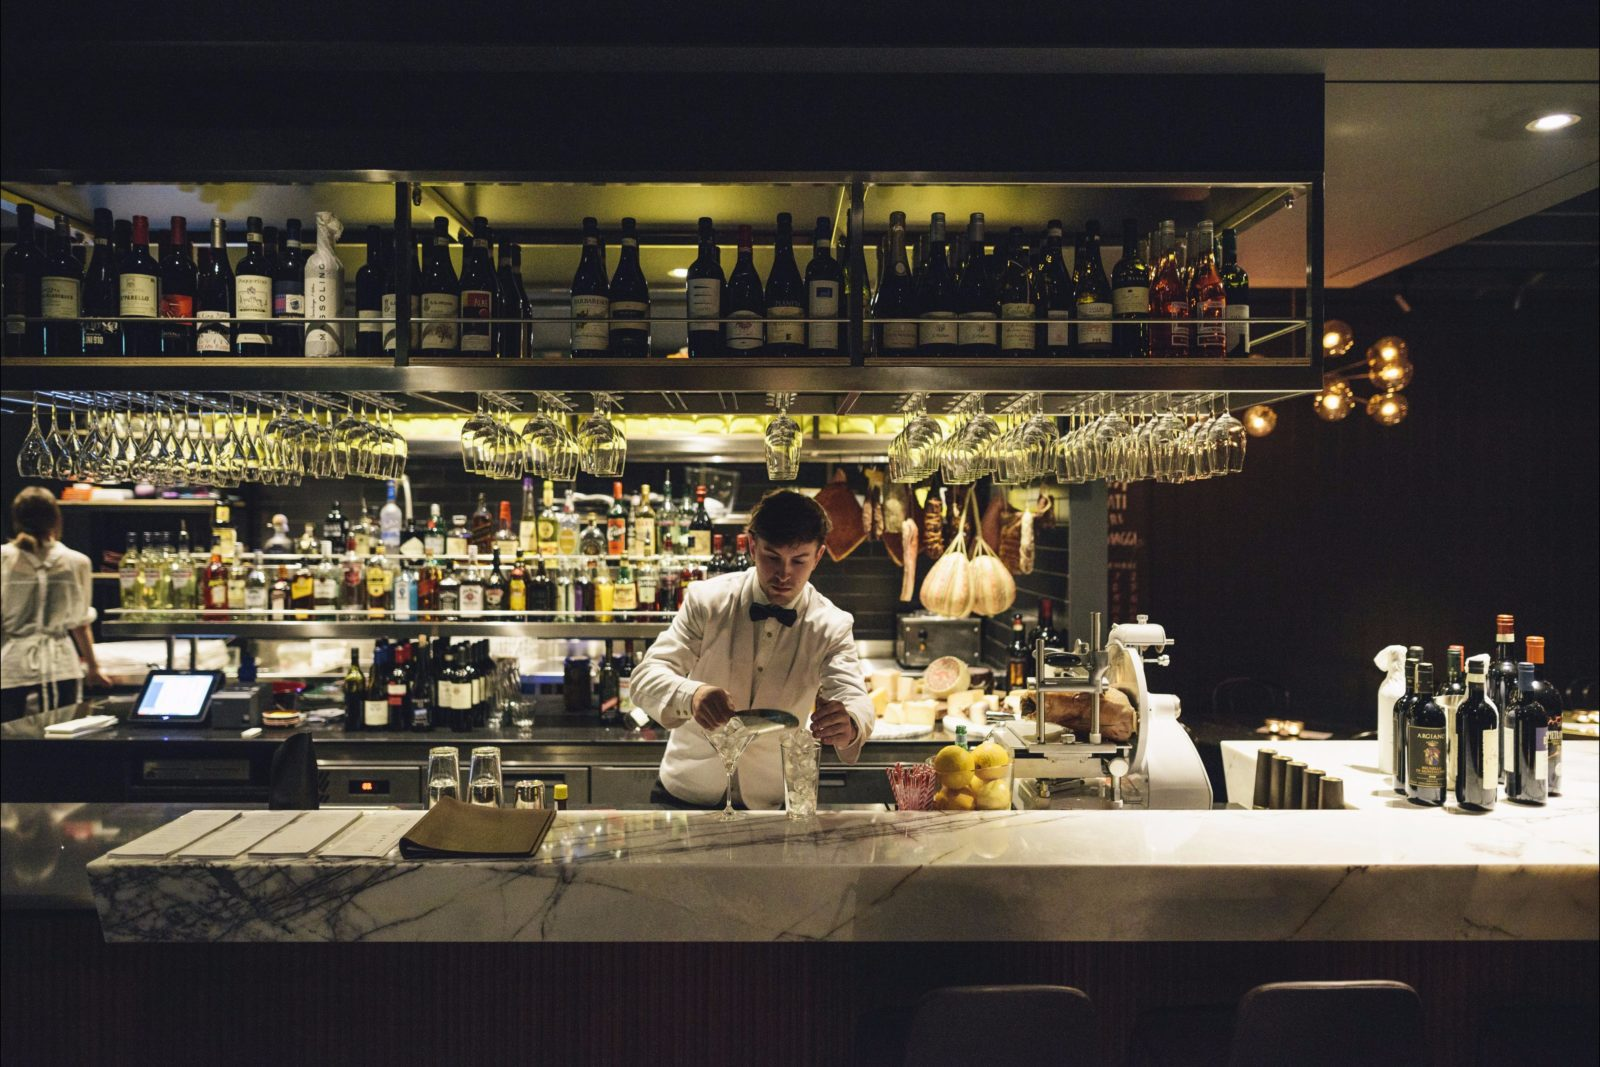 Barman pouring drinks at a marble bar